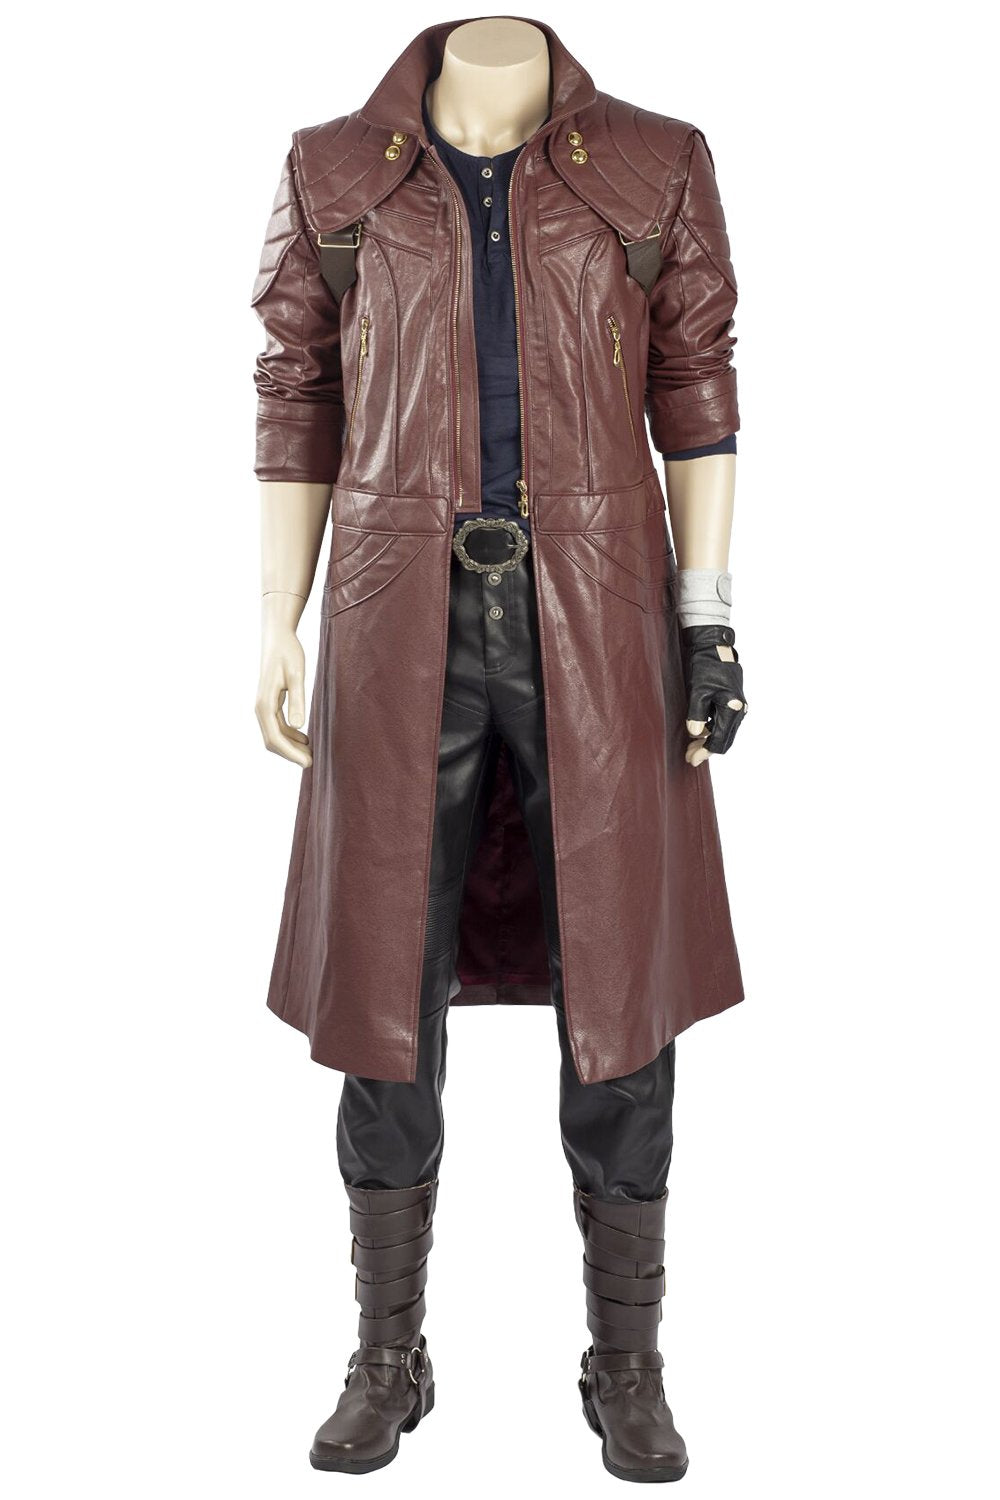 Devil May Cry 5 Dante Outfit Trenchcoat Cosplay Costume ...